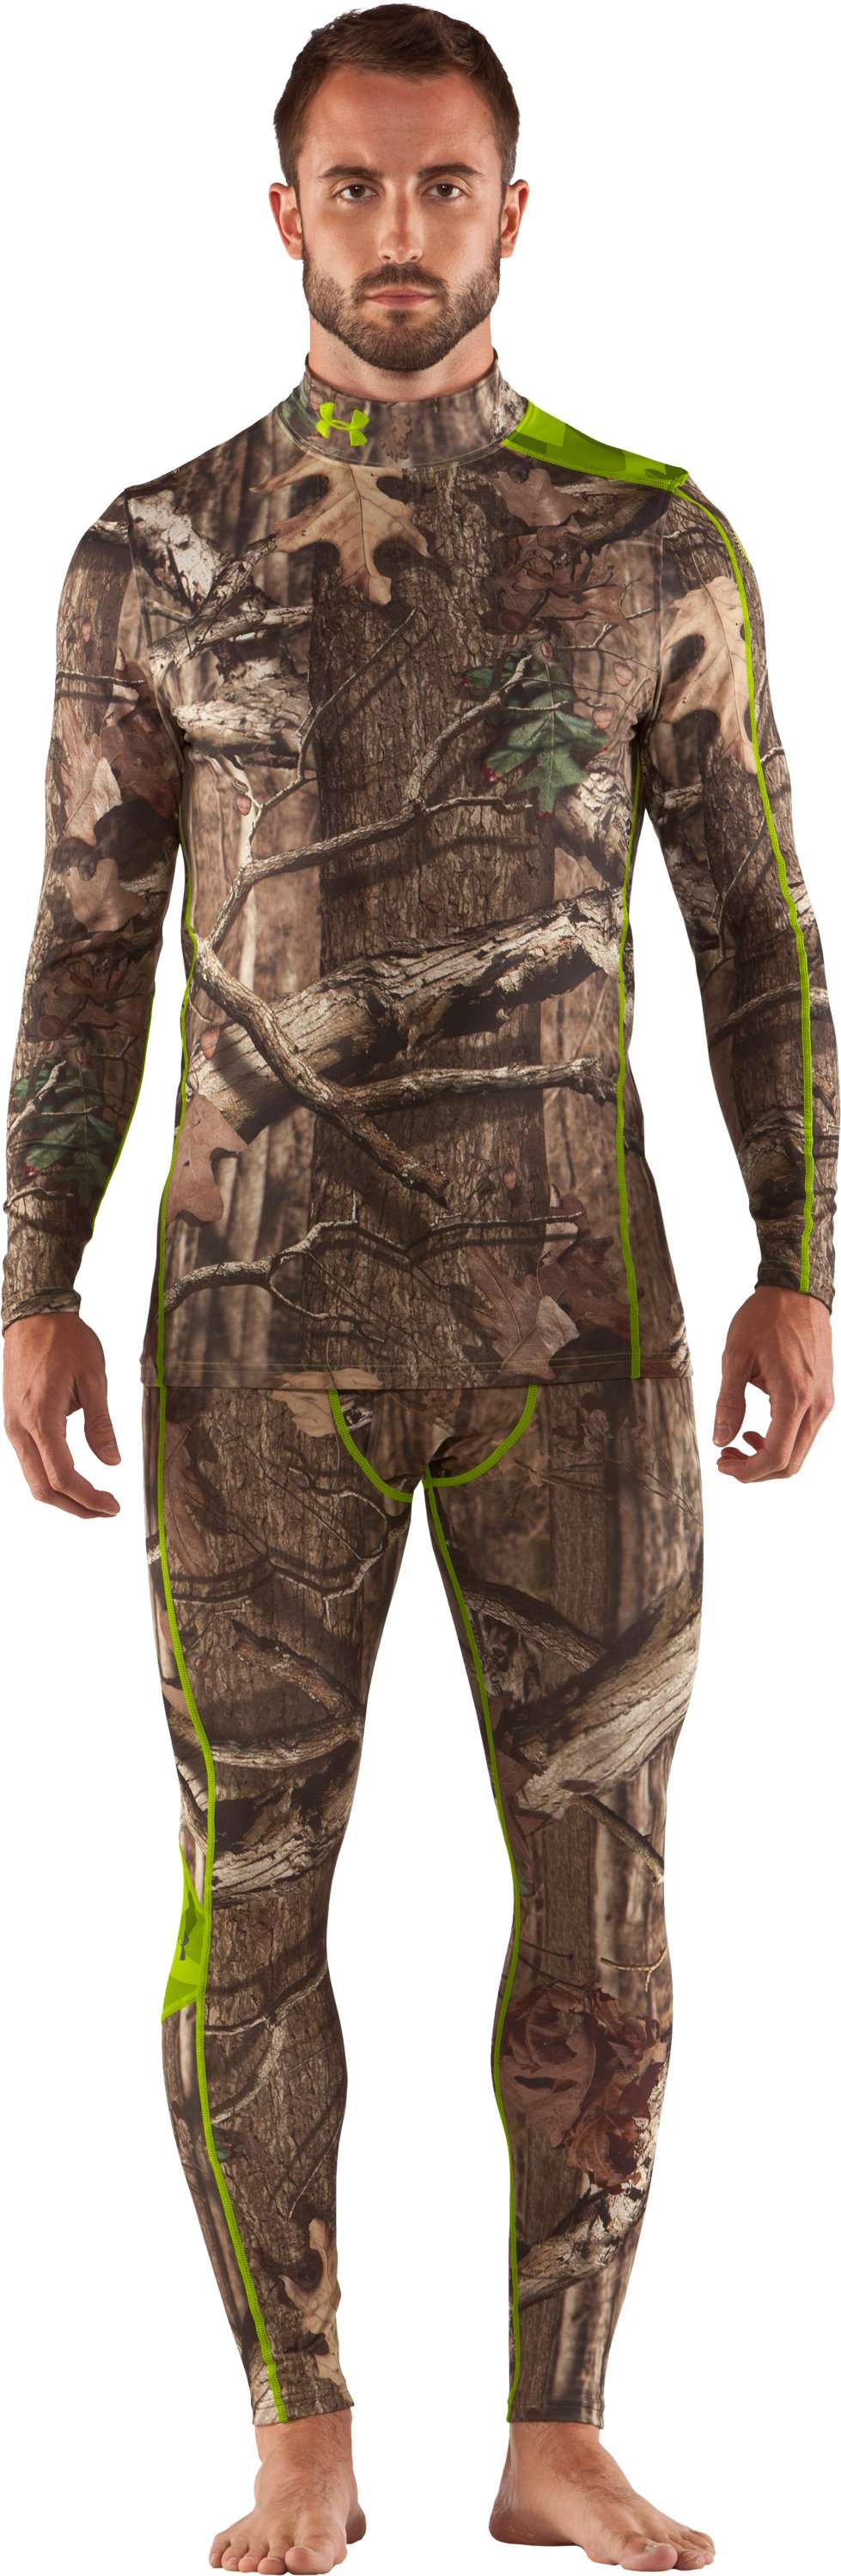 Men's ColdGear® Evo Scent Control Leggings, Mossy Oak Break-Up Infinity, Front